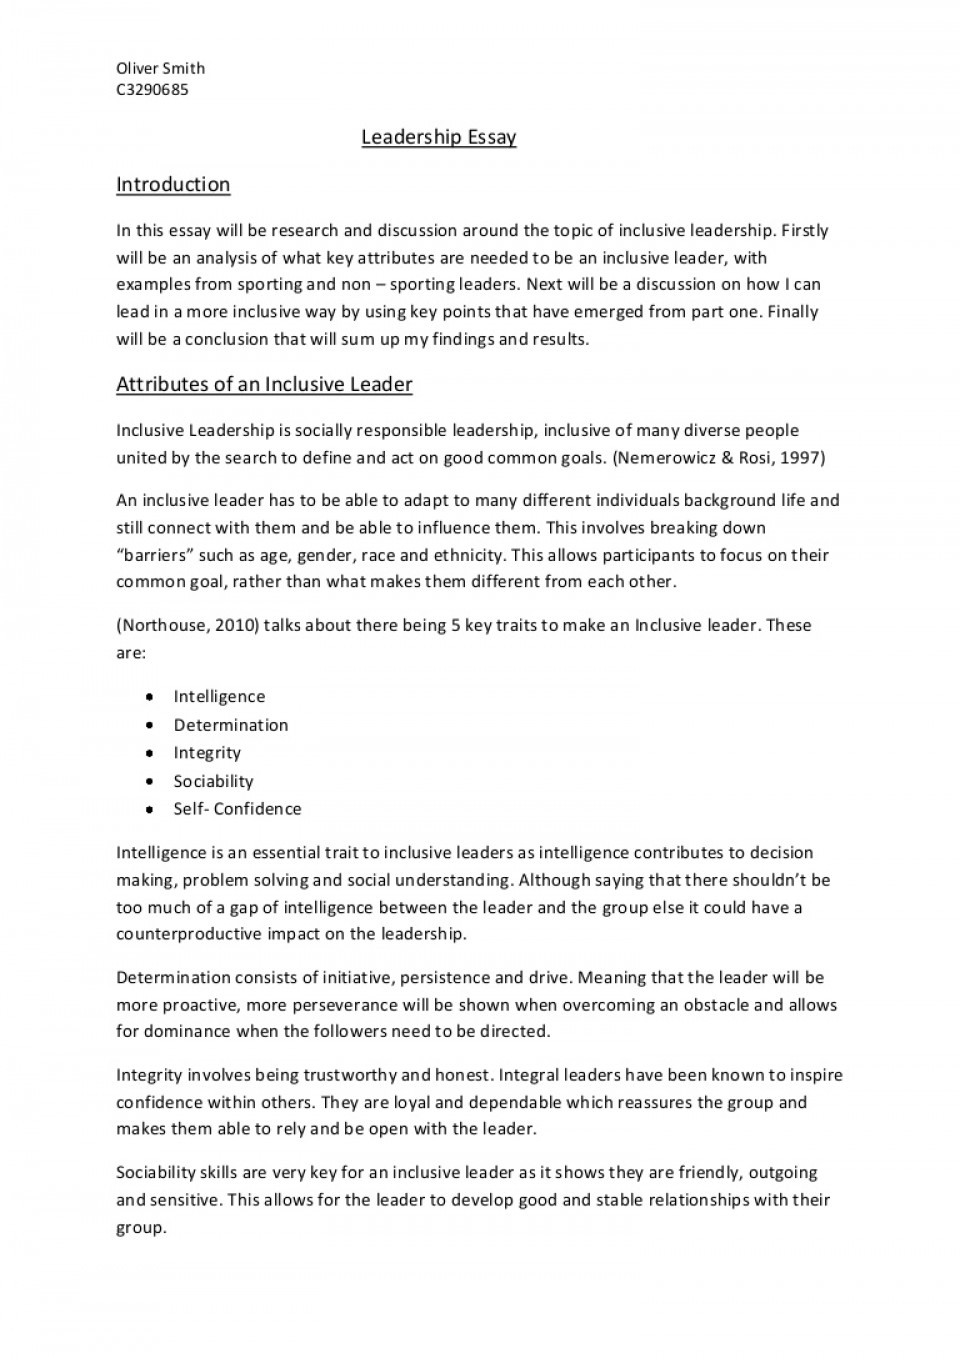 001 What Is Leadership Essay Leadershipessay Phpapp01 Thumbnail Excellent Military Example Makes A Good Leader Pdf 960